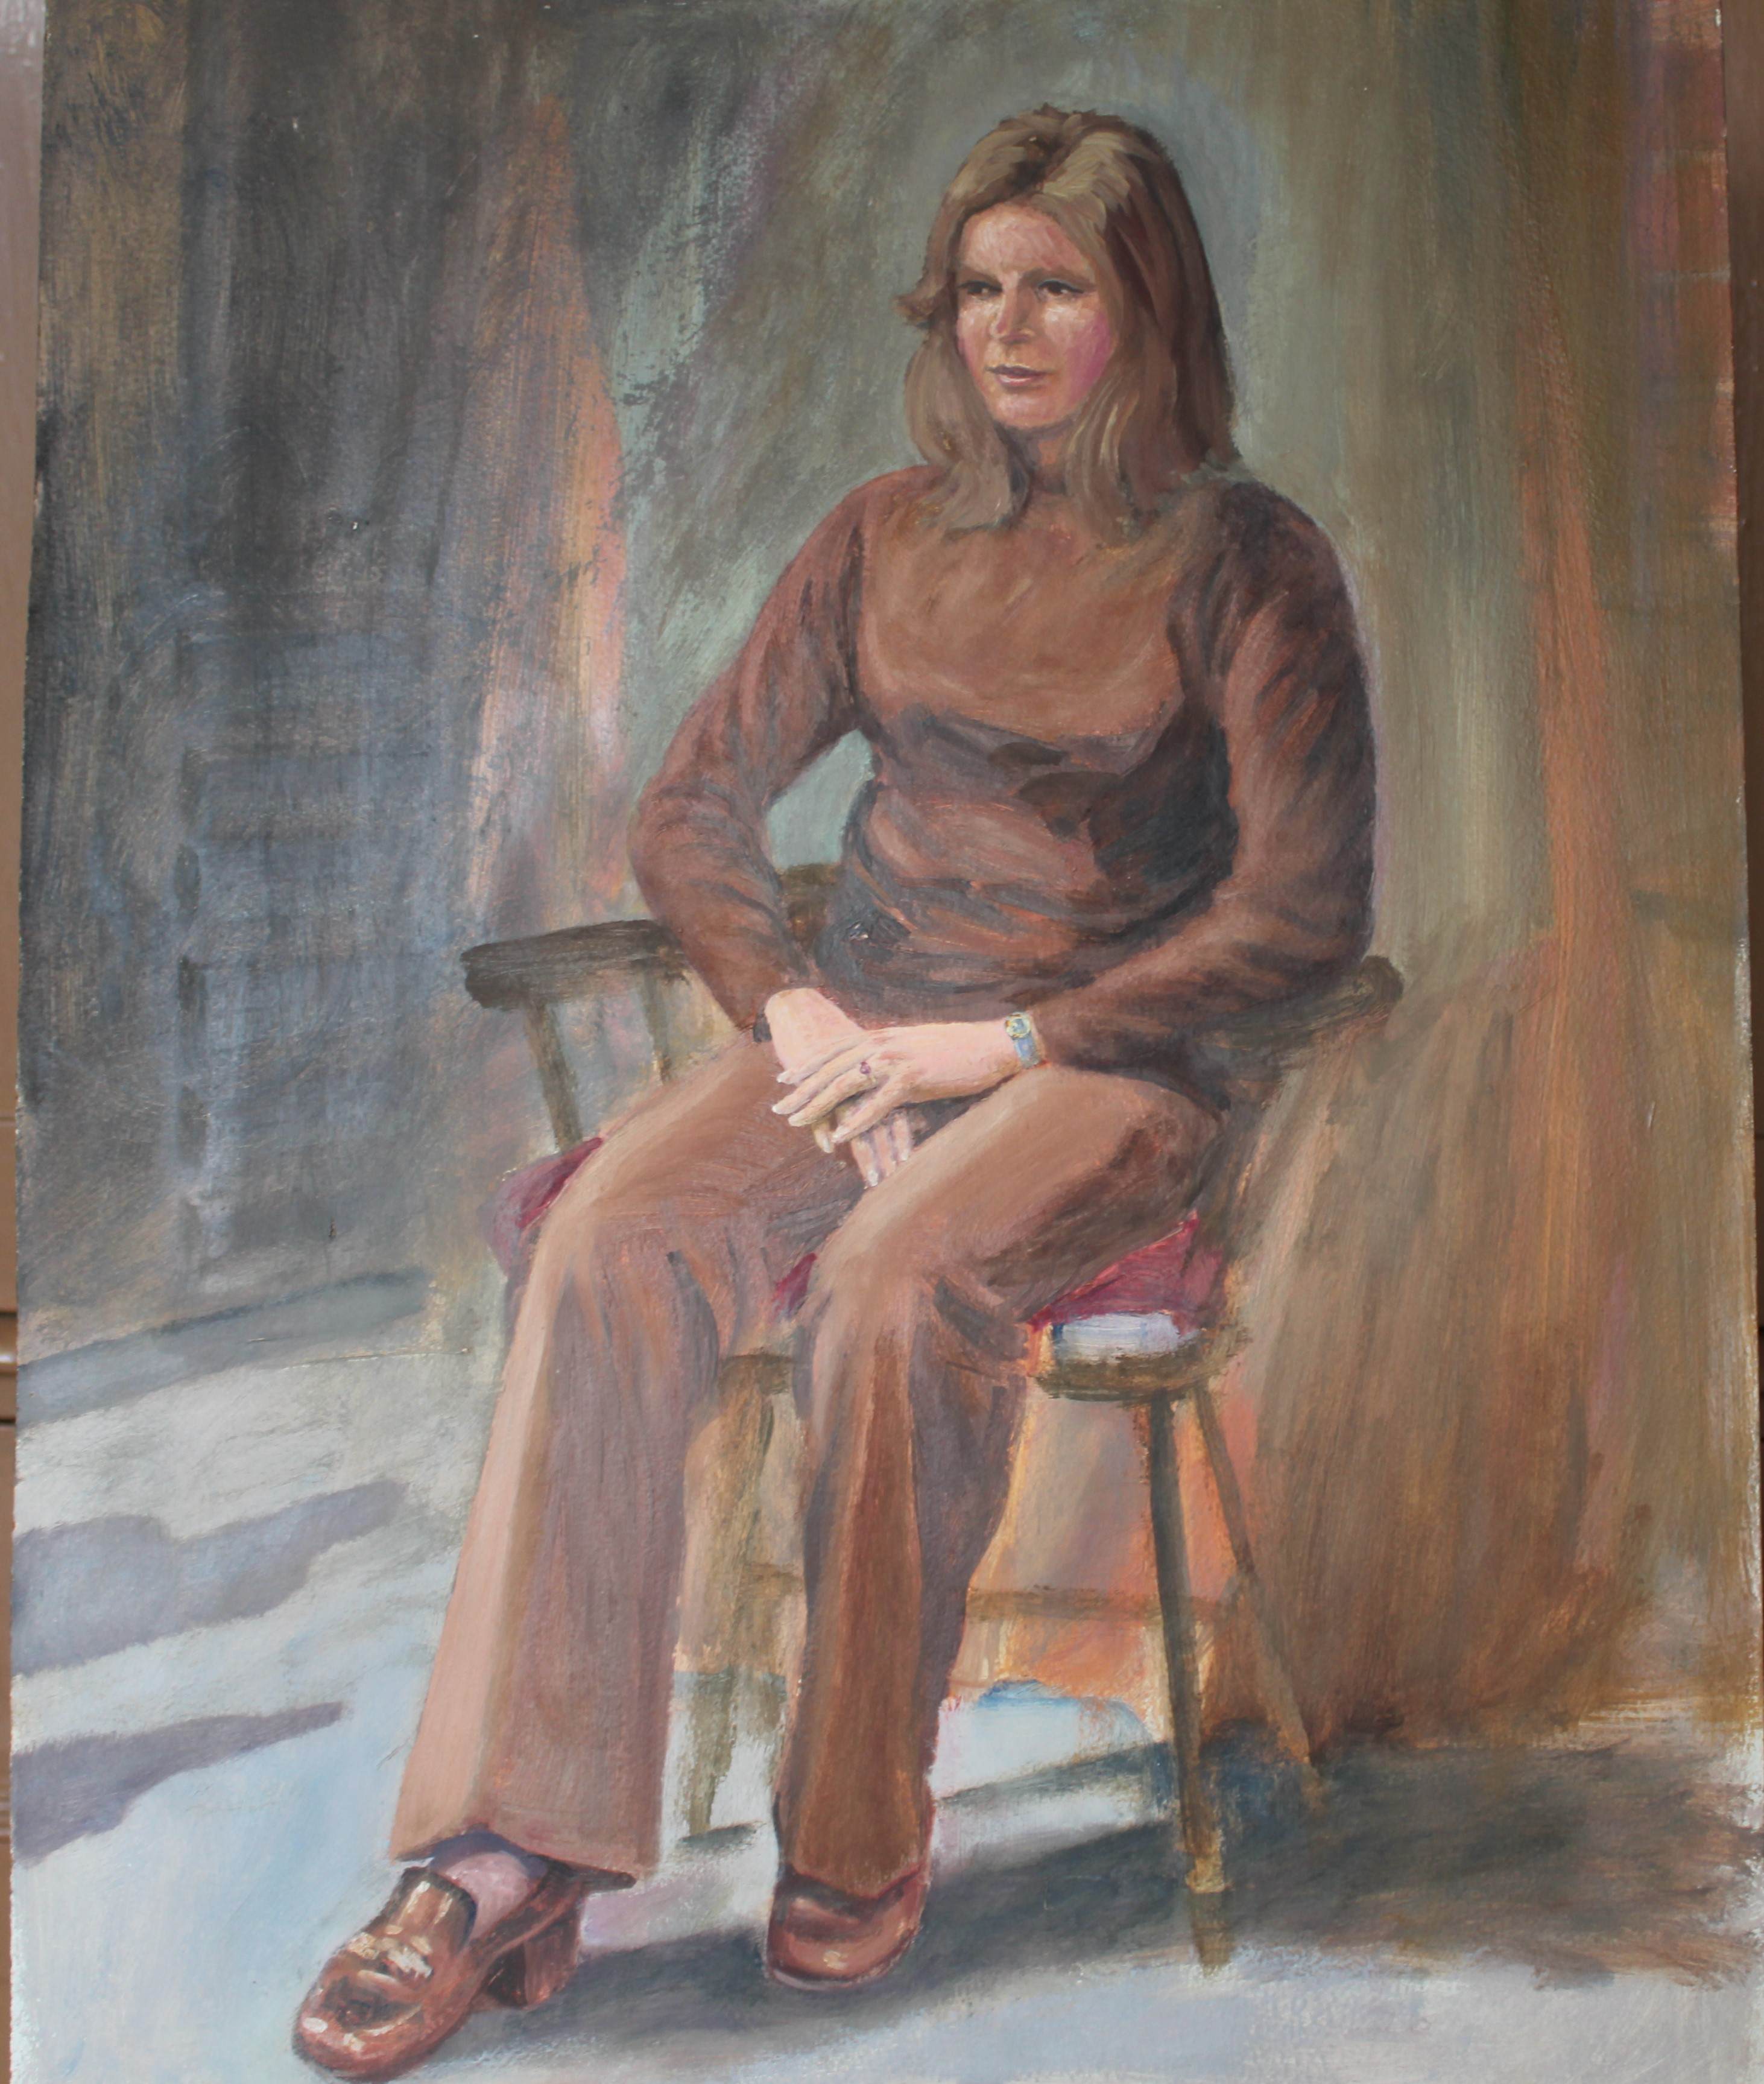 •DAY DREAM, WOMAN SEATED WEARING RED JACKET AND DRESS Signed unframed oil on board, 60 x 44.3cm, - Image 3 of 6